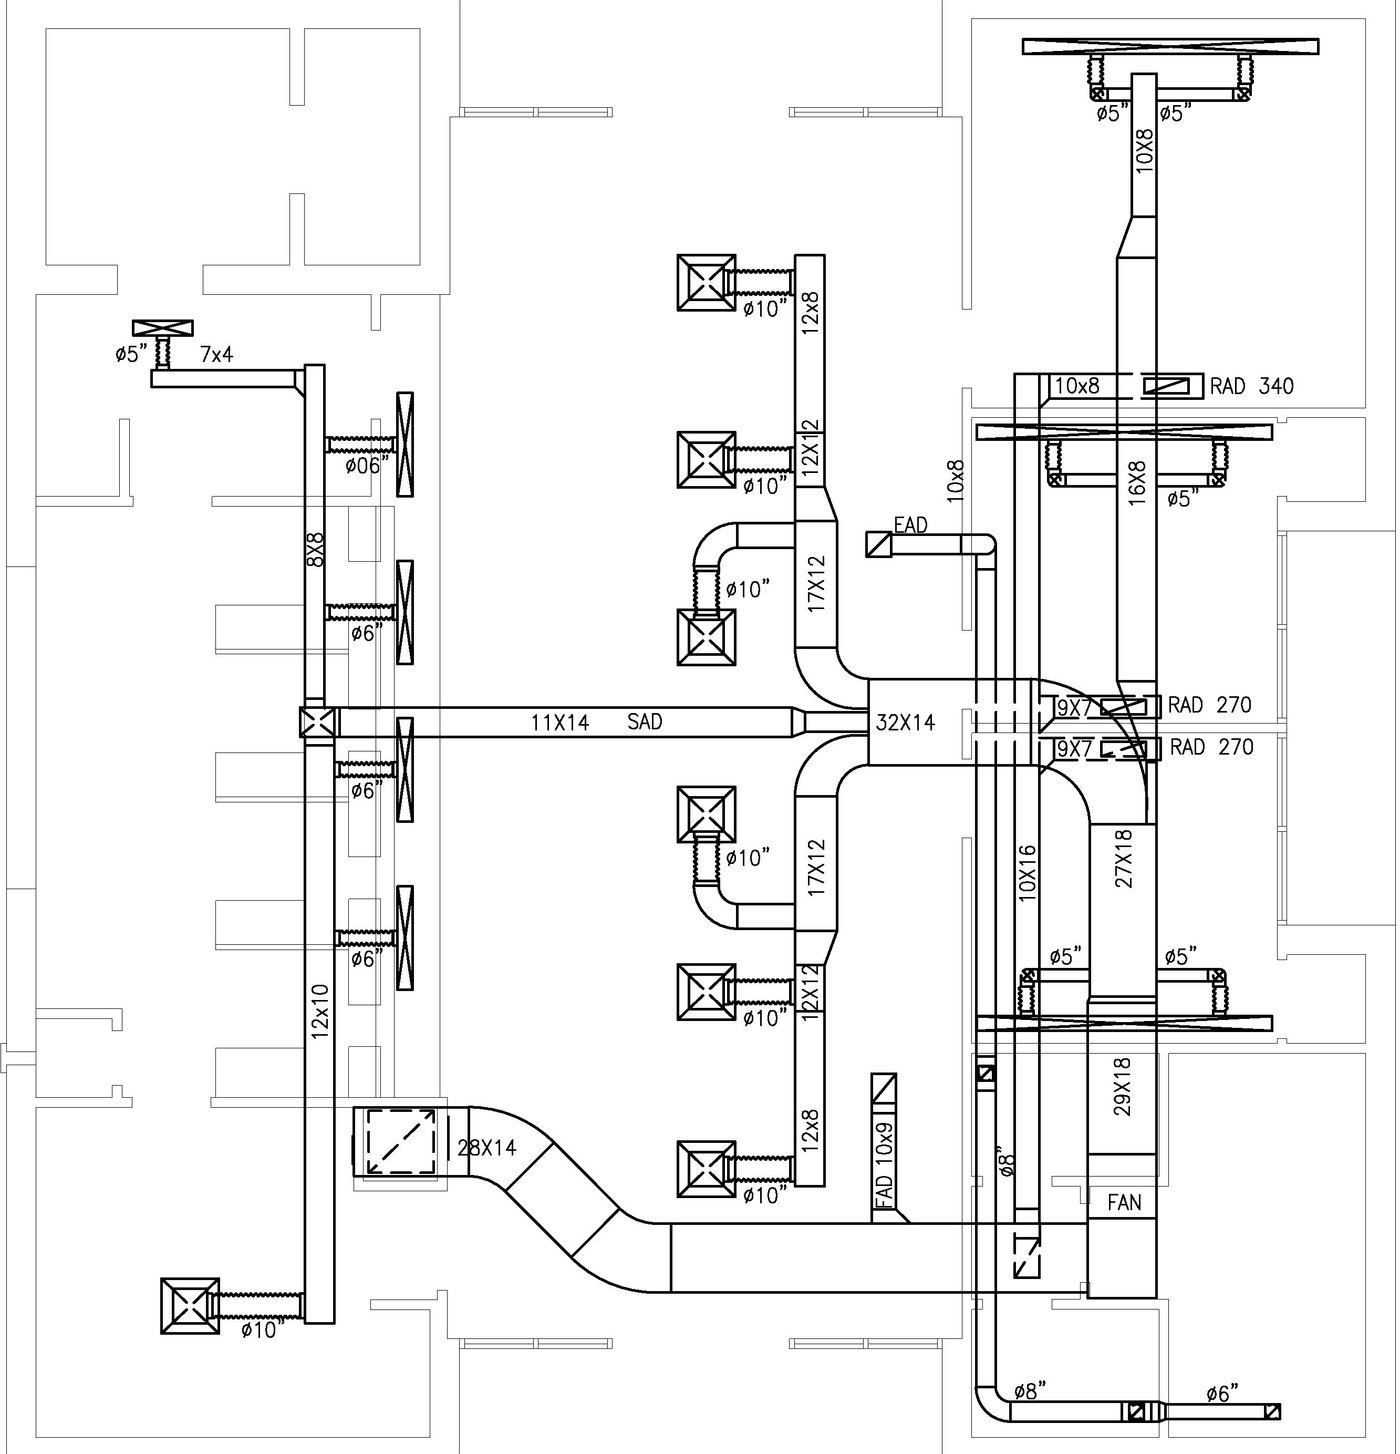 HVAC Plans by Raymond Alberga at Coroflot.com